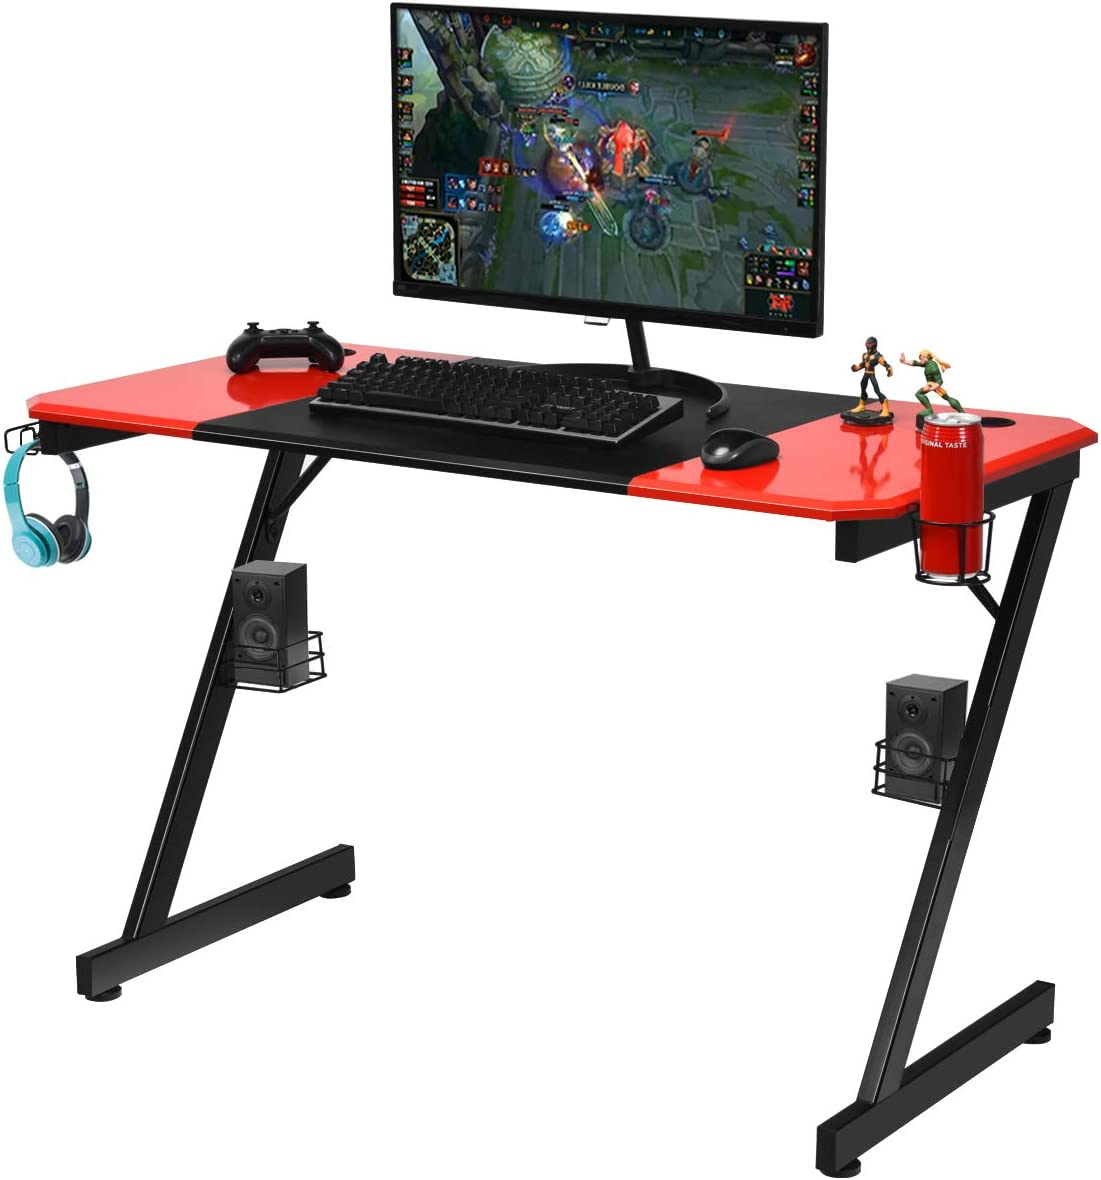 Tangkula 47 Inch Gaming Desk Computer Desk, Z-Shaped Professional Gamer Workstation with PVC Blow Molding Textured Surface, Gamer Table Desk w Cup Holder, Headphone Hook Audio Stands